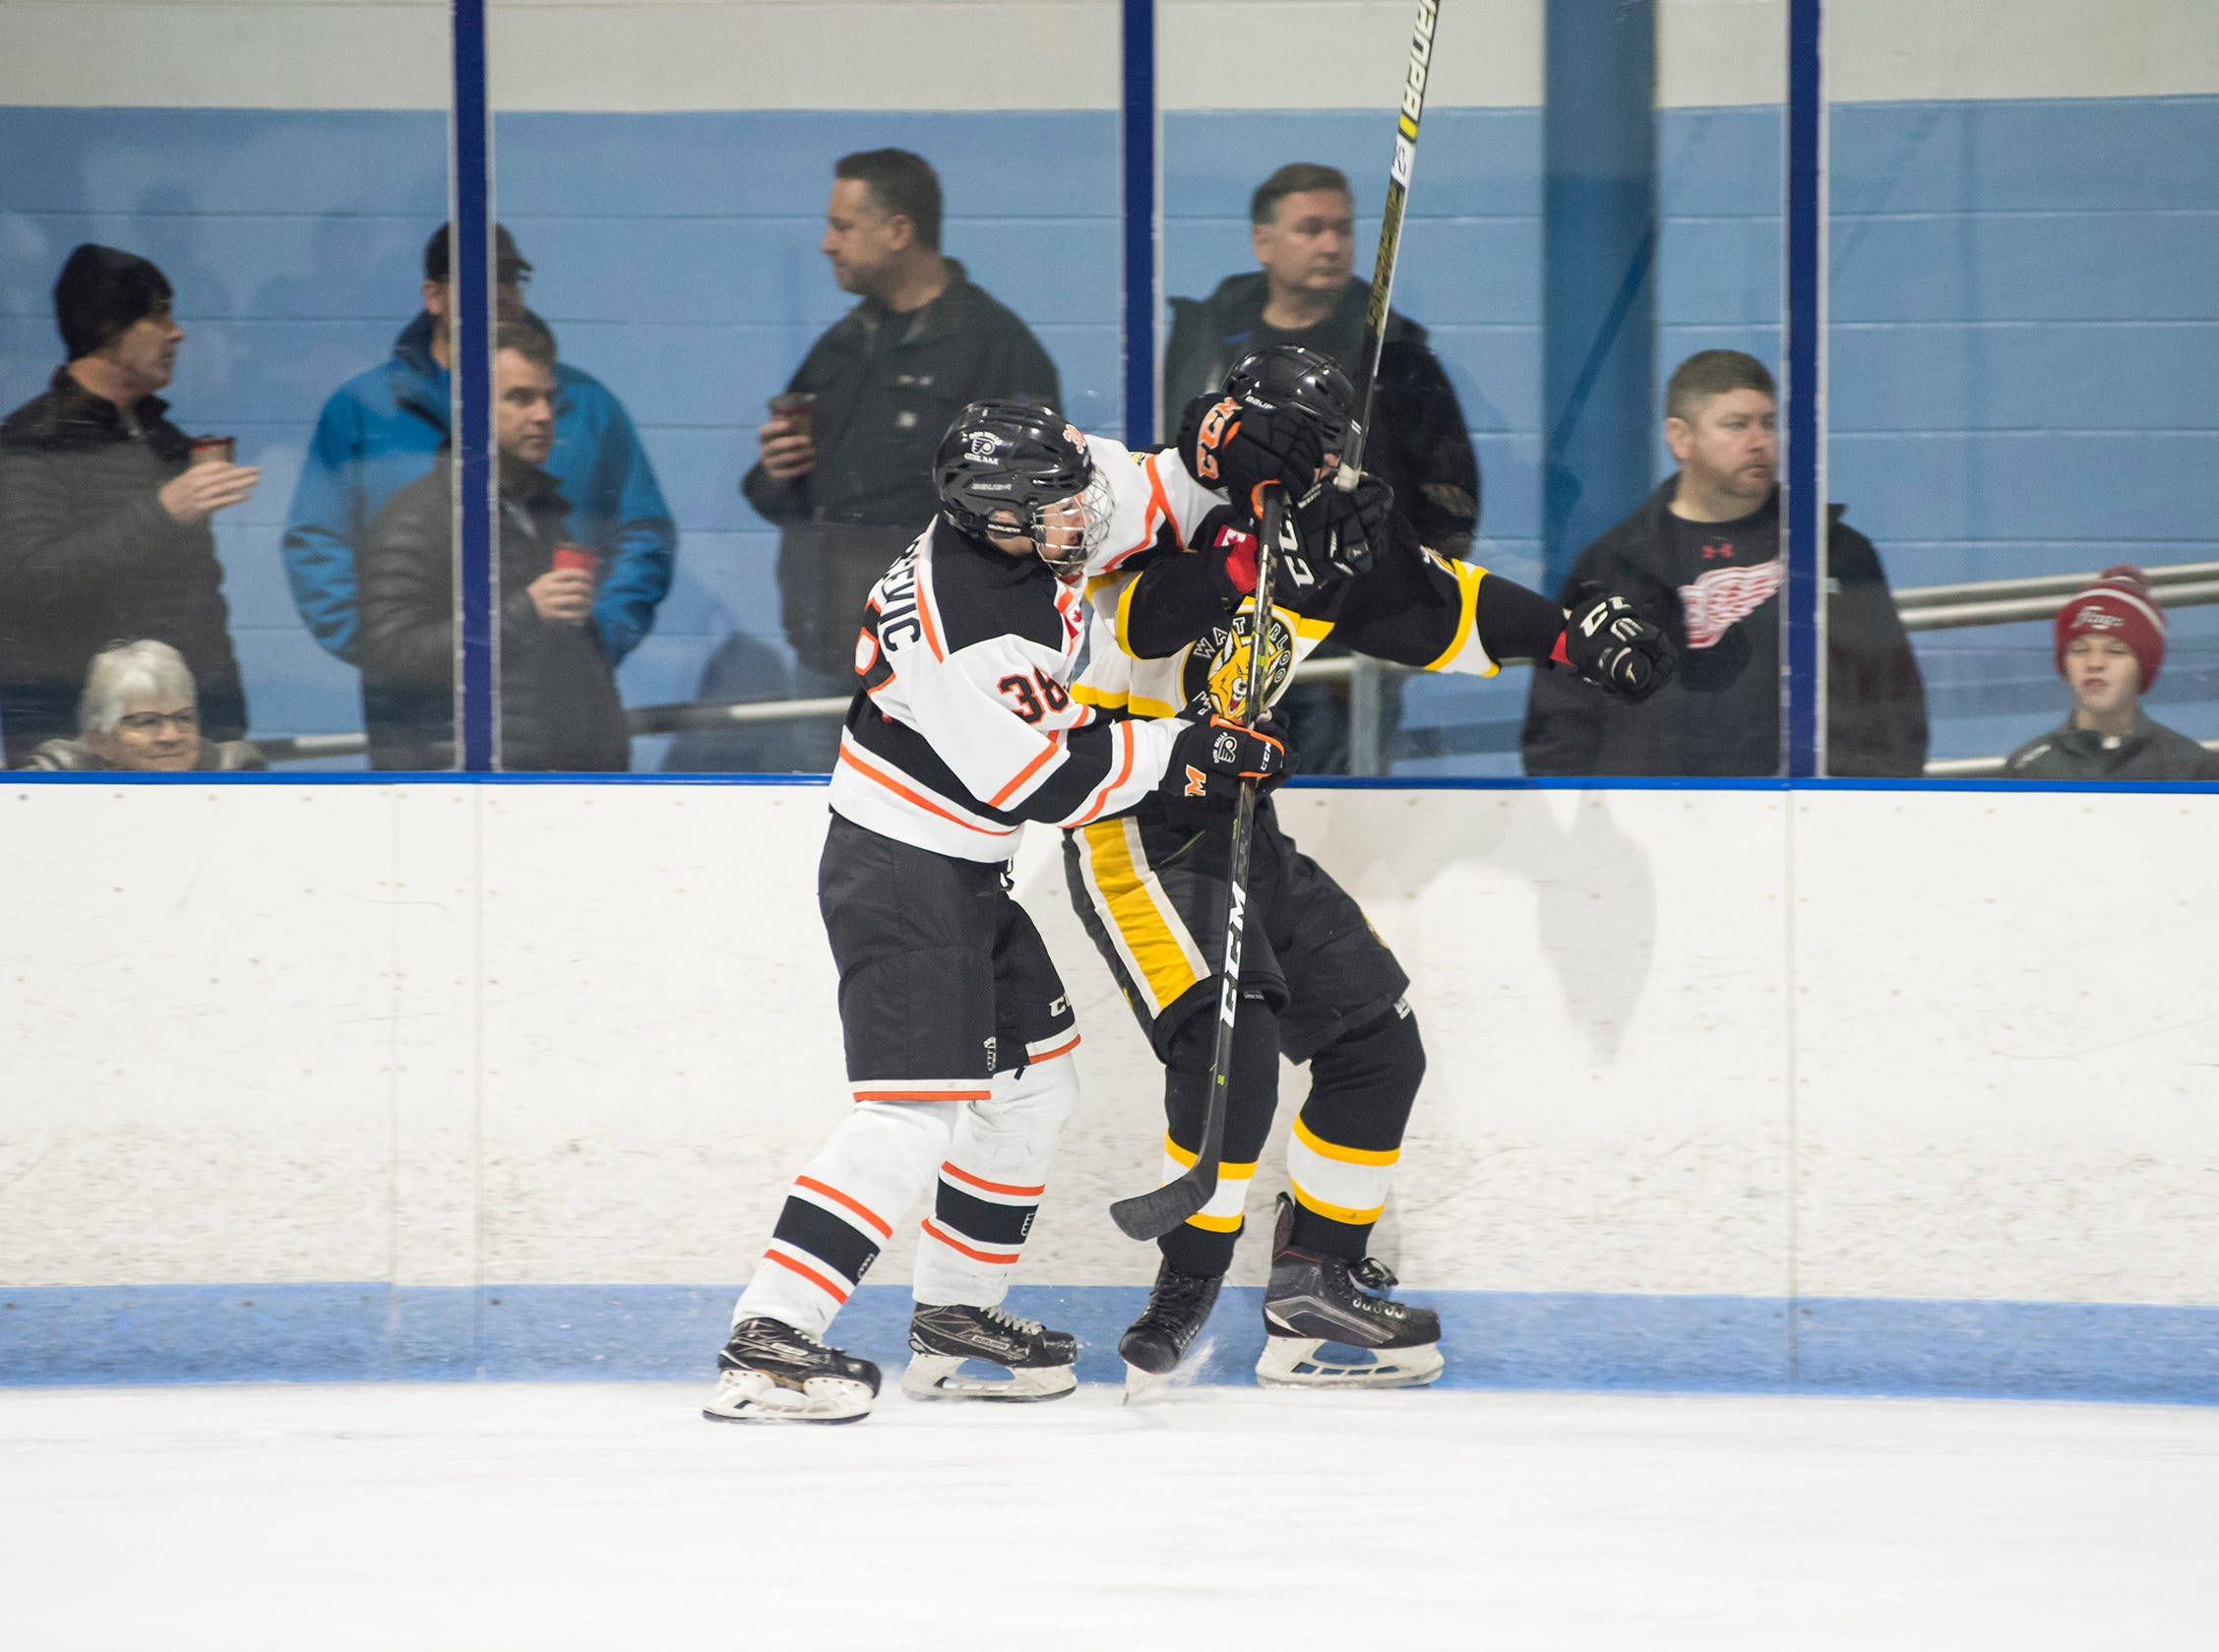 Don Mills Flyers forward Michael Starcevic (36) checks Waterloo Wolves defenseman Macgregor Roy into the wall during their BAAA-A Silver Stick Finals match Friday, Jan. 4, 2019 at Glacier Pointe Ice Complex.